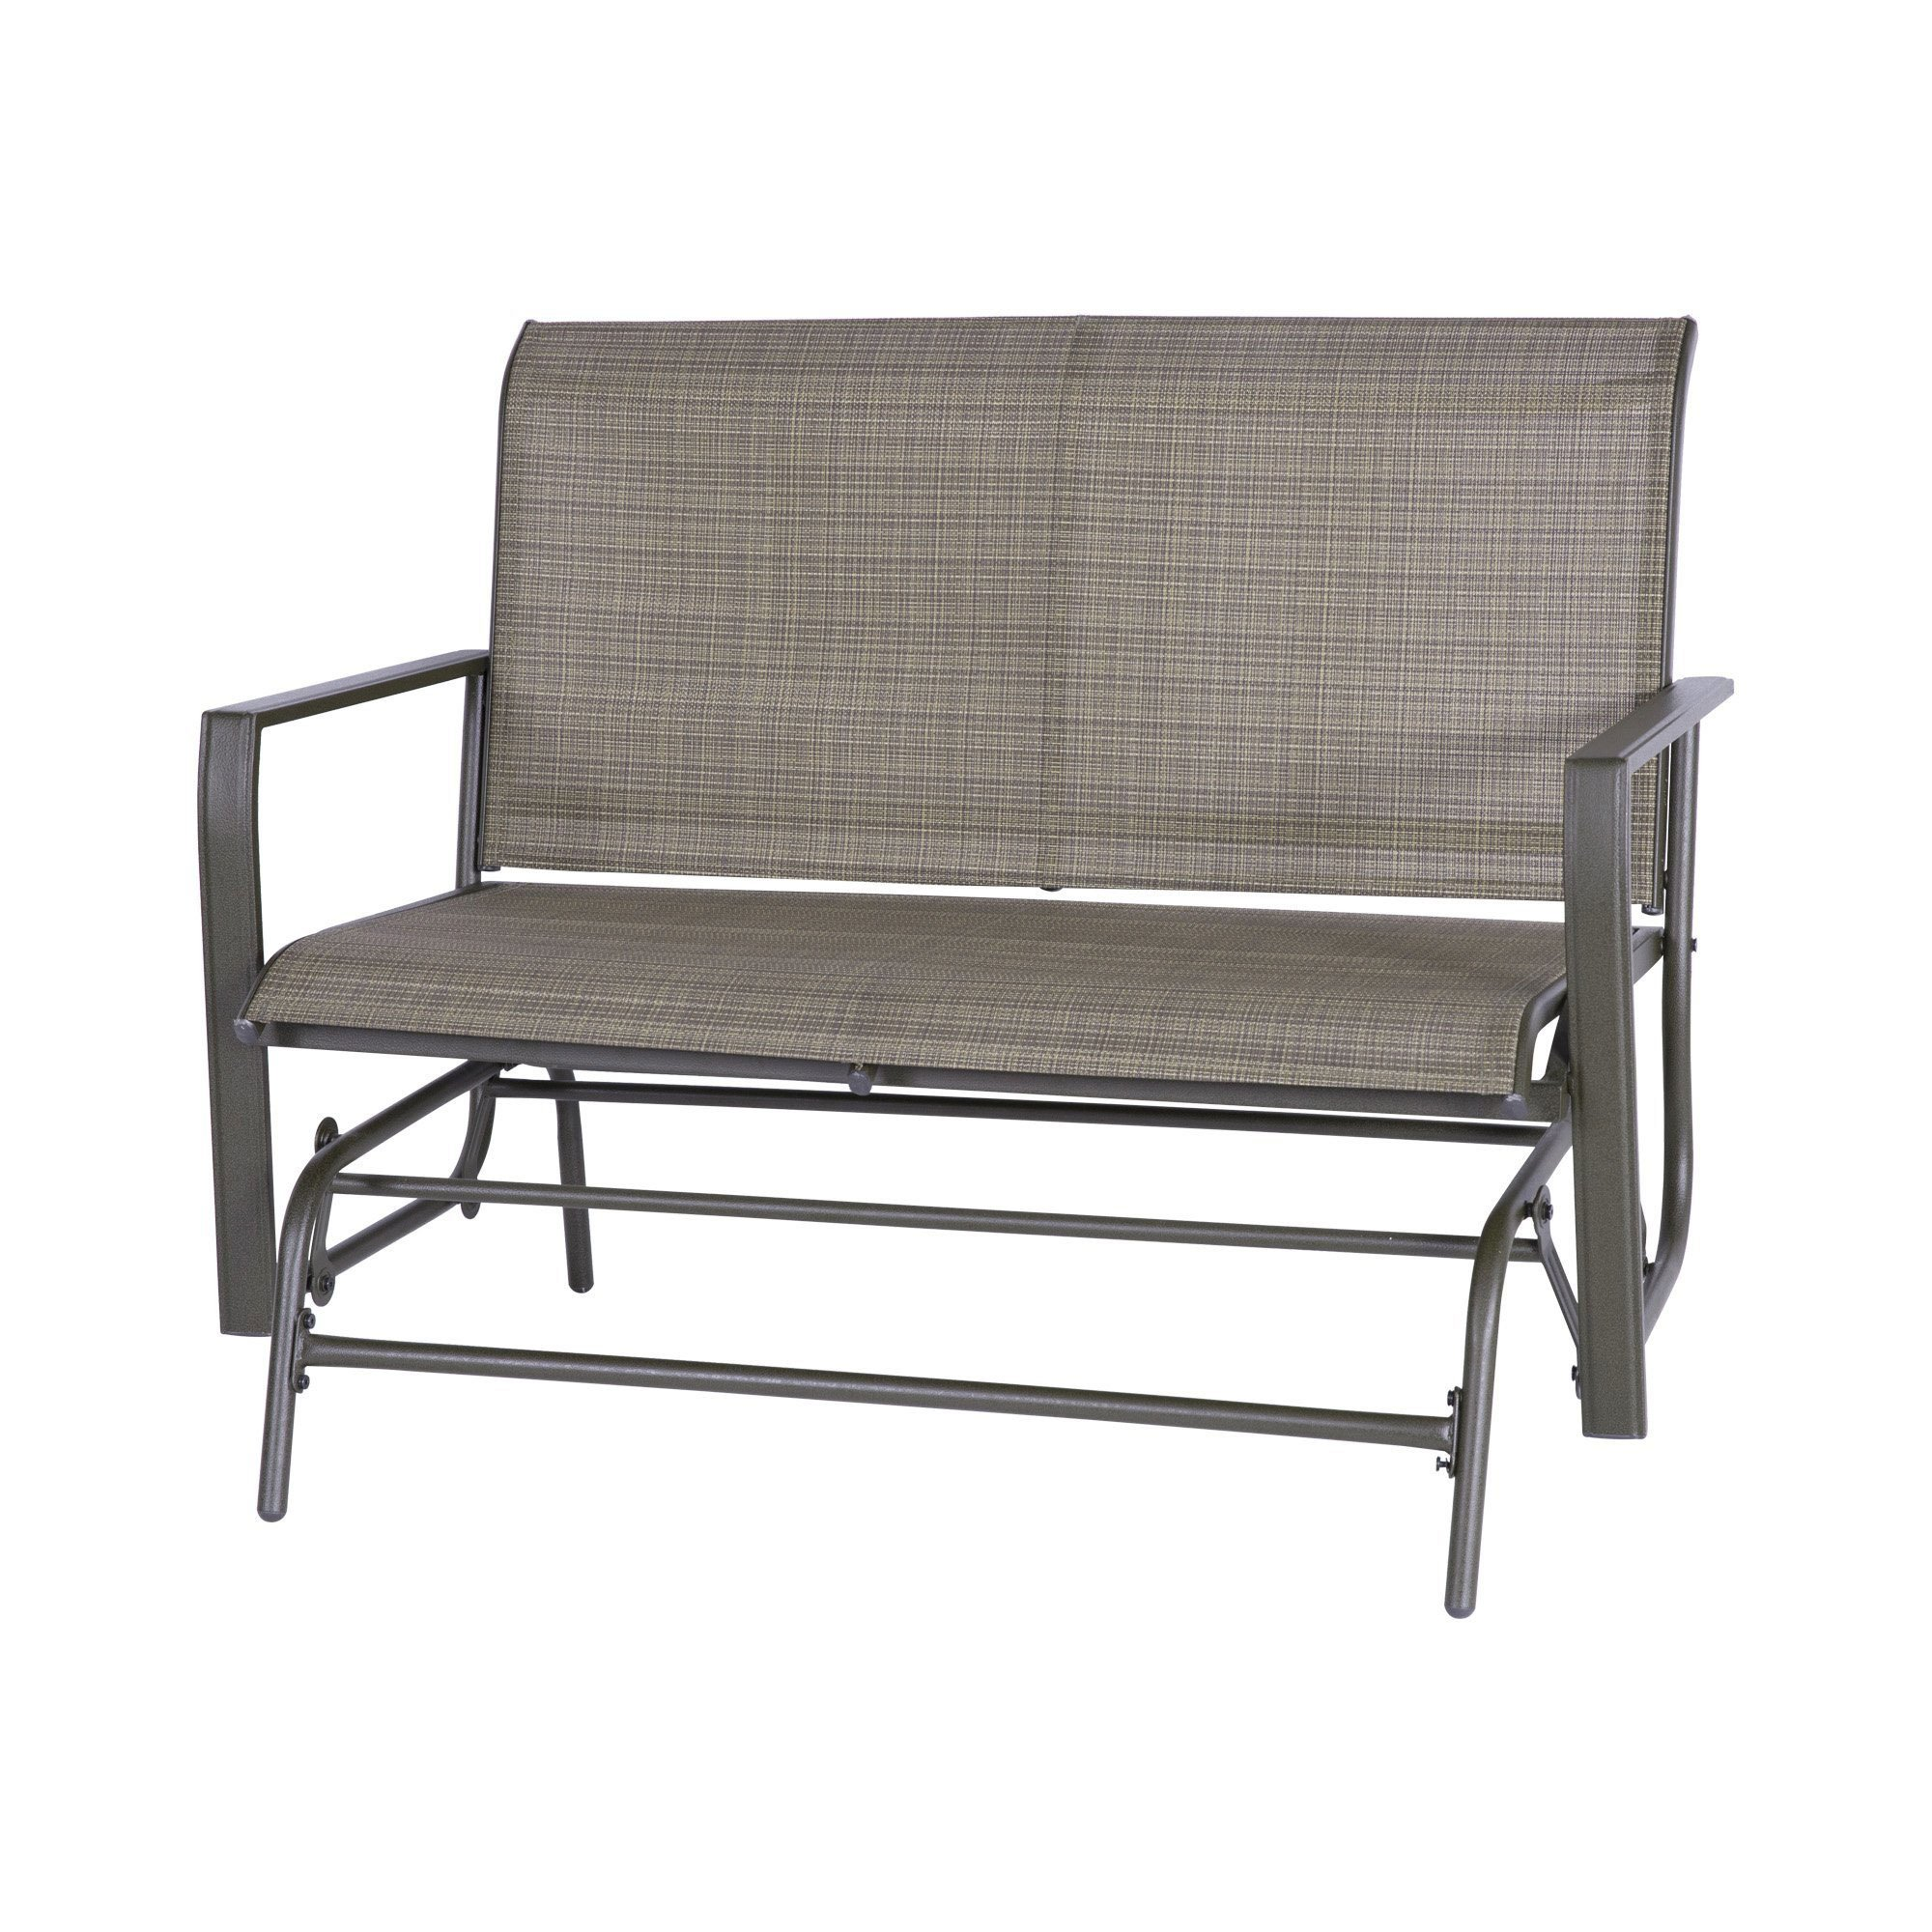 Cloud mountain outdoor furniture porch patio glider sofa couch swing bench chair